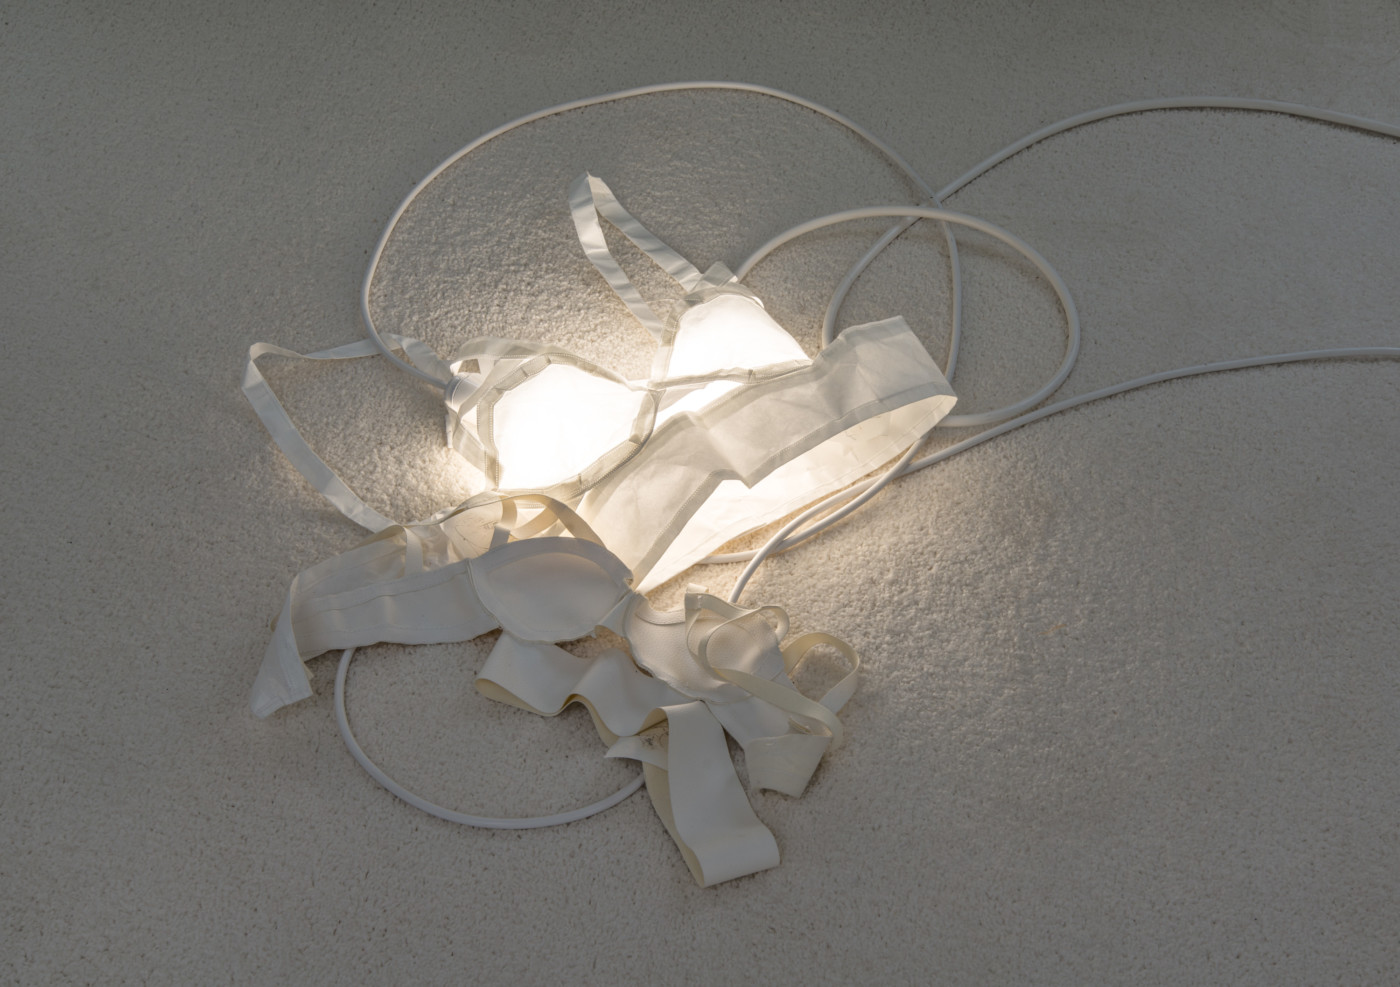 MÉLANIE MATRANGA  Ascendant , 2018  Cotton, lights, electrical cords 56 x 64 x 2 cm / 22.2 x 25.3 x 0.7 in - High Art Gallery Paris